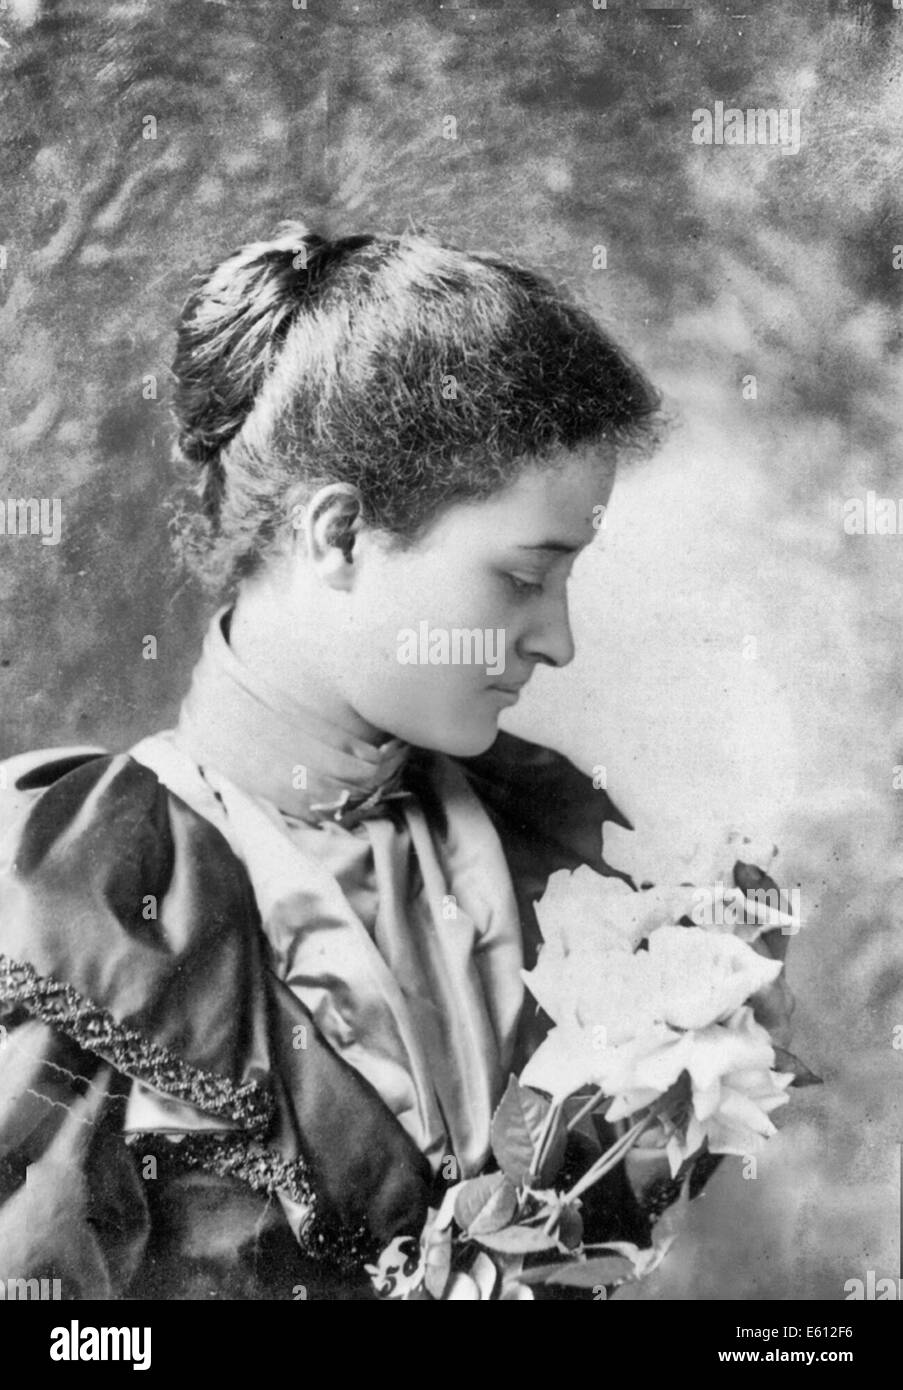 Princess of Hawaii Kaiulani - Head and shoulders, facing right; holding flowers, 1893 - Stock Image